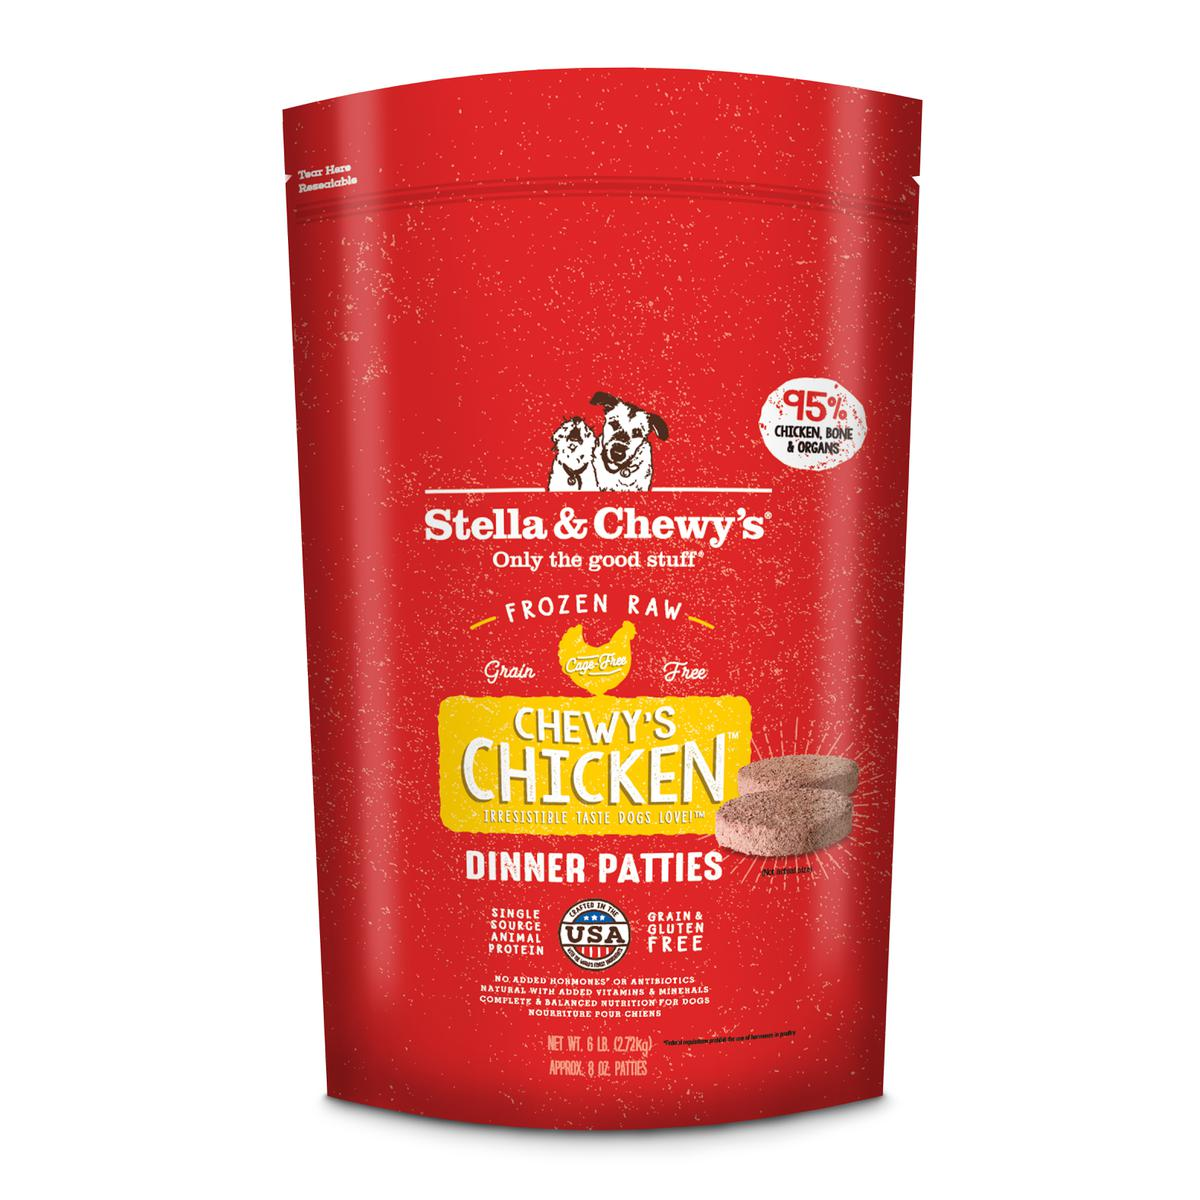 Stella & Chewy's Chewy's Chicken 8-oz Dinner Patties Grain-Free Raw Frozen Dog Food, 6-lb